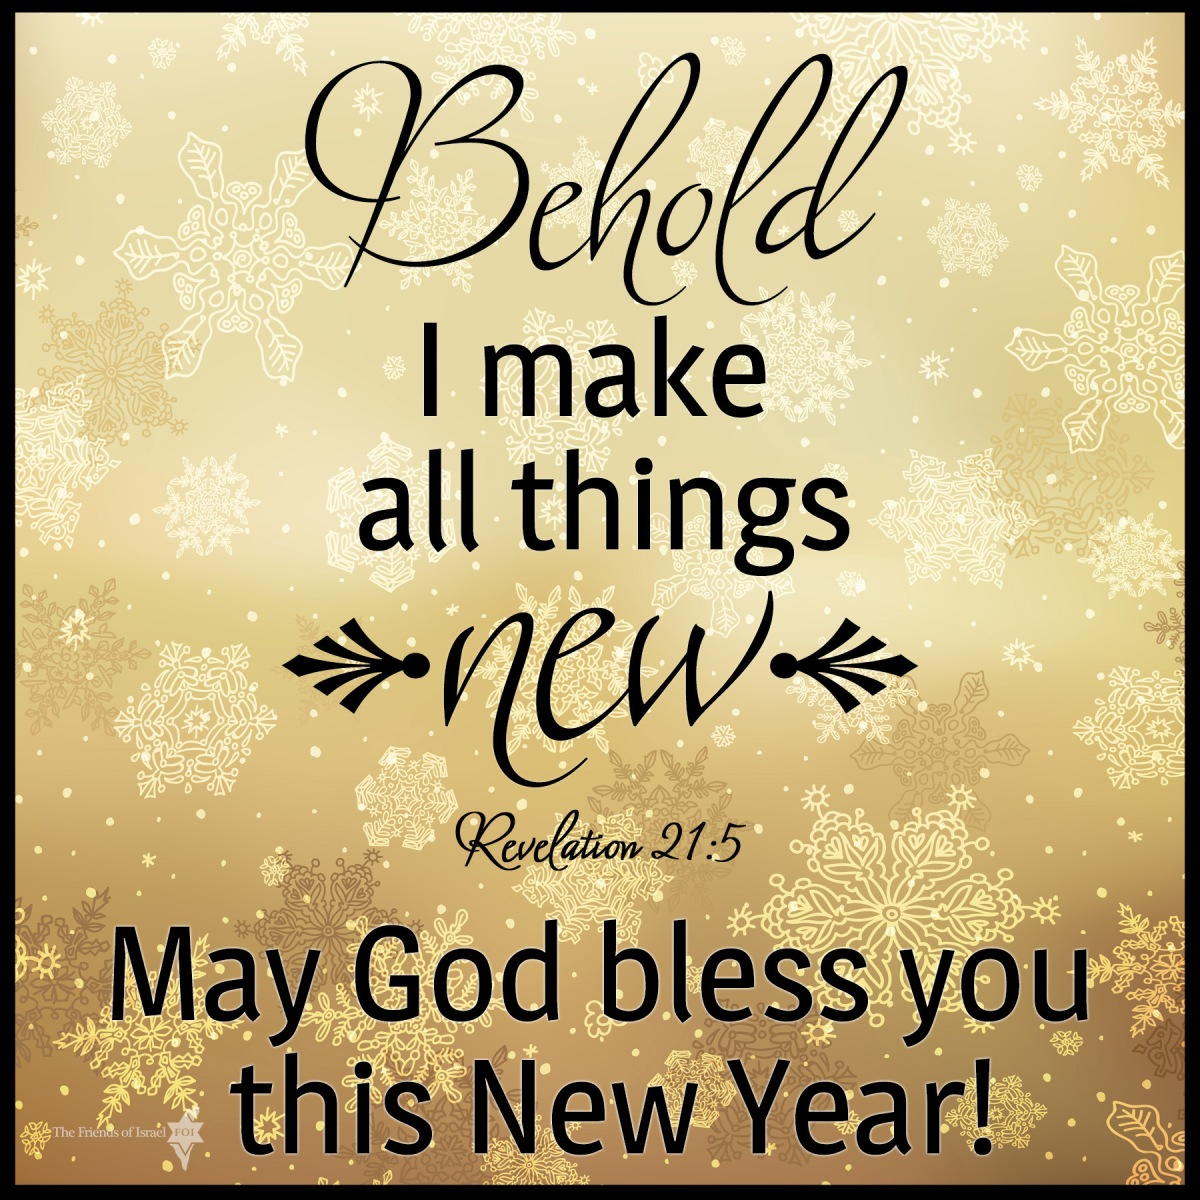 New year New Blessings | At the Well Ministries